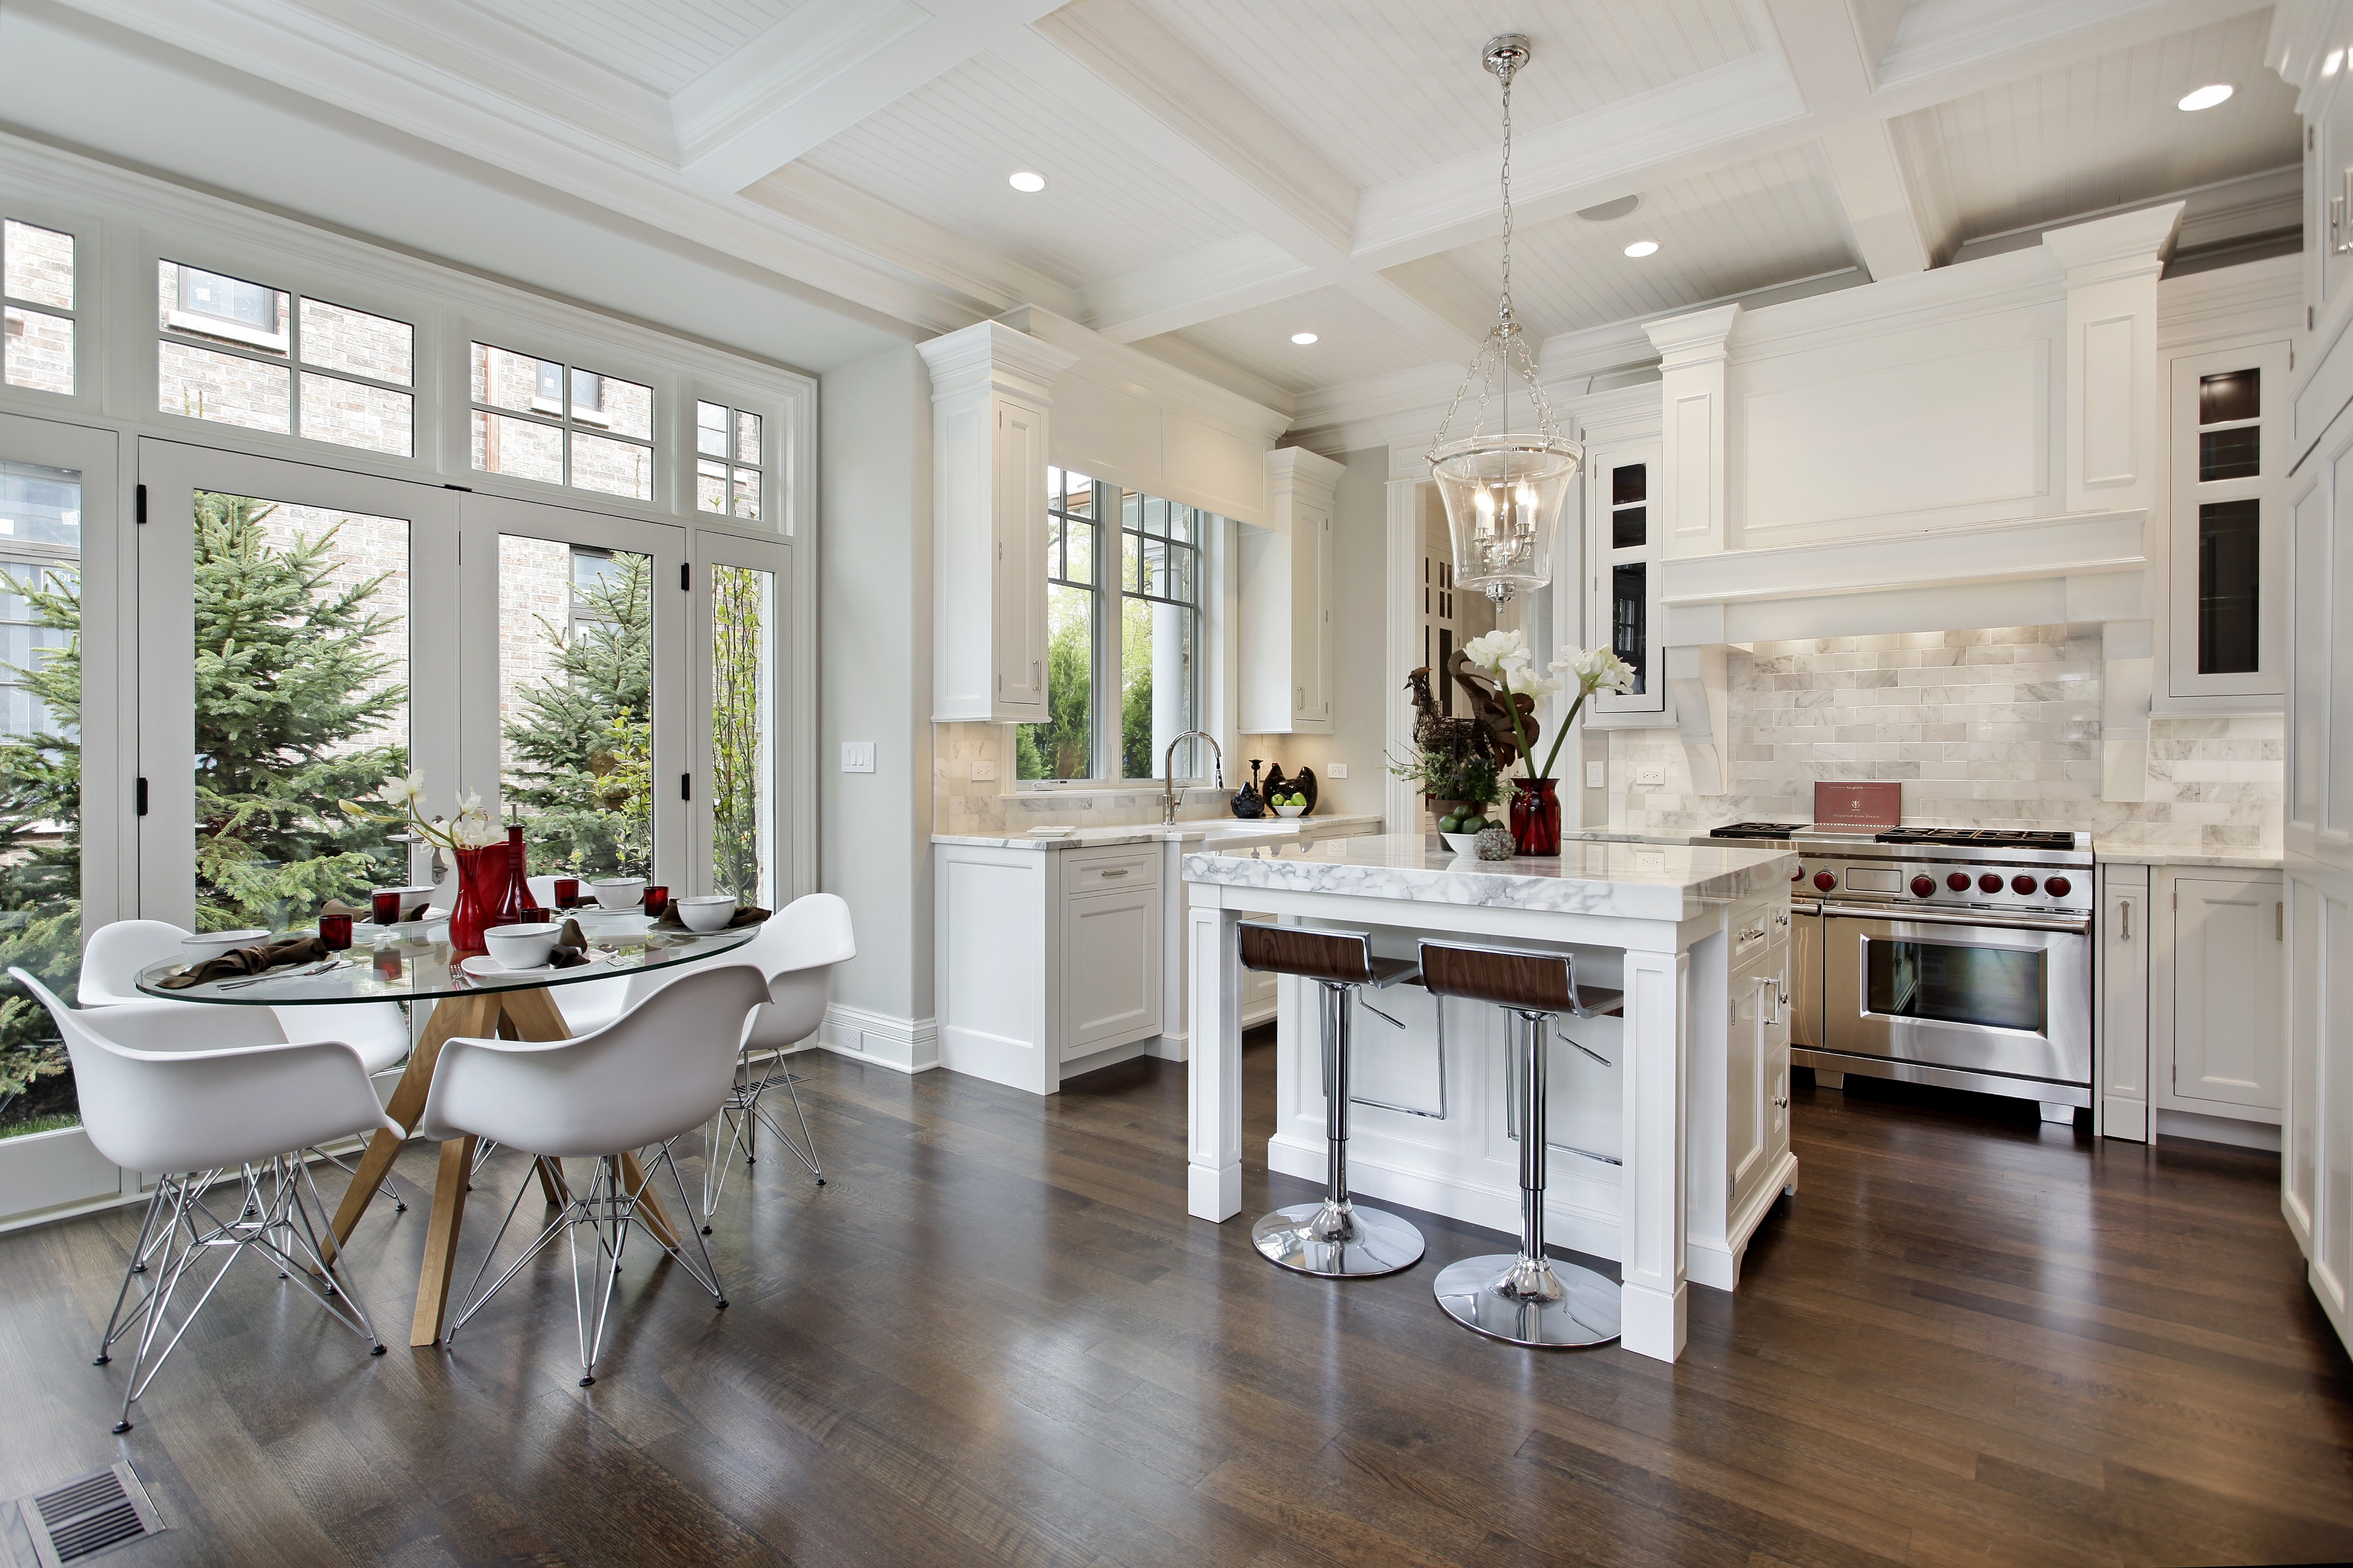 12 Kitchen Design Ideas For Home Chefs By Lifedesignhome Medium